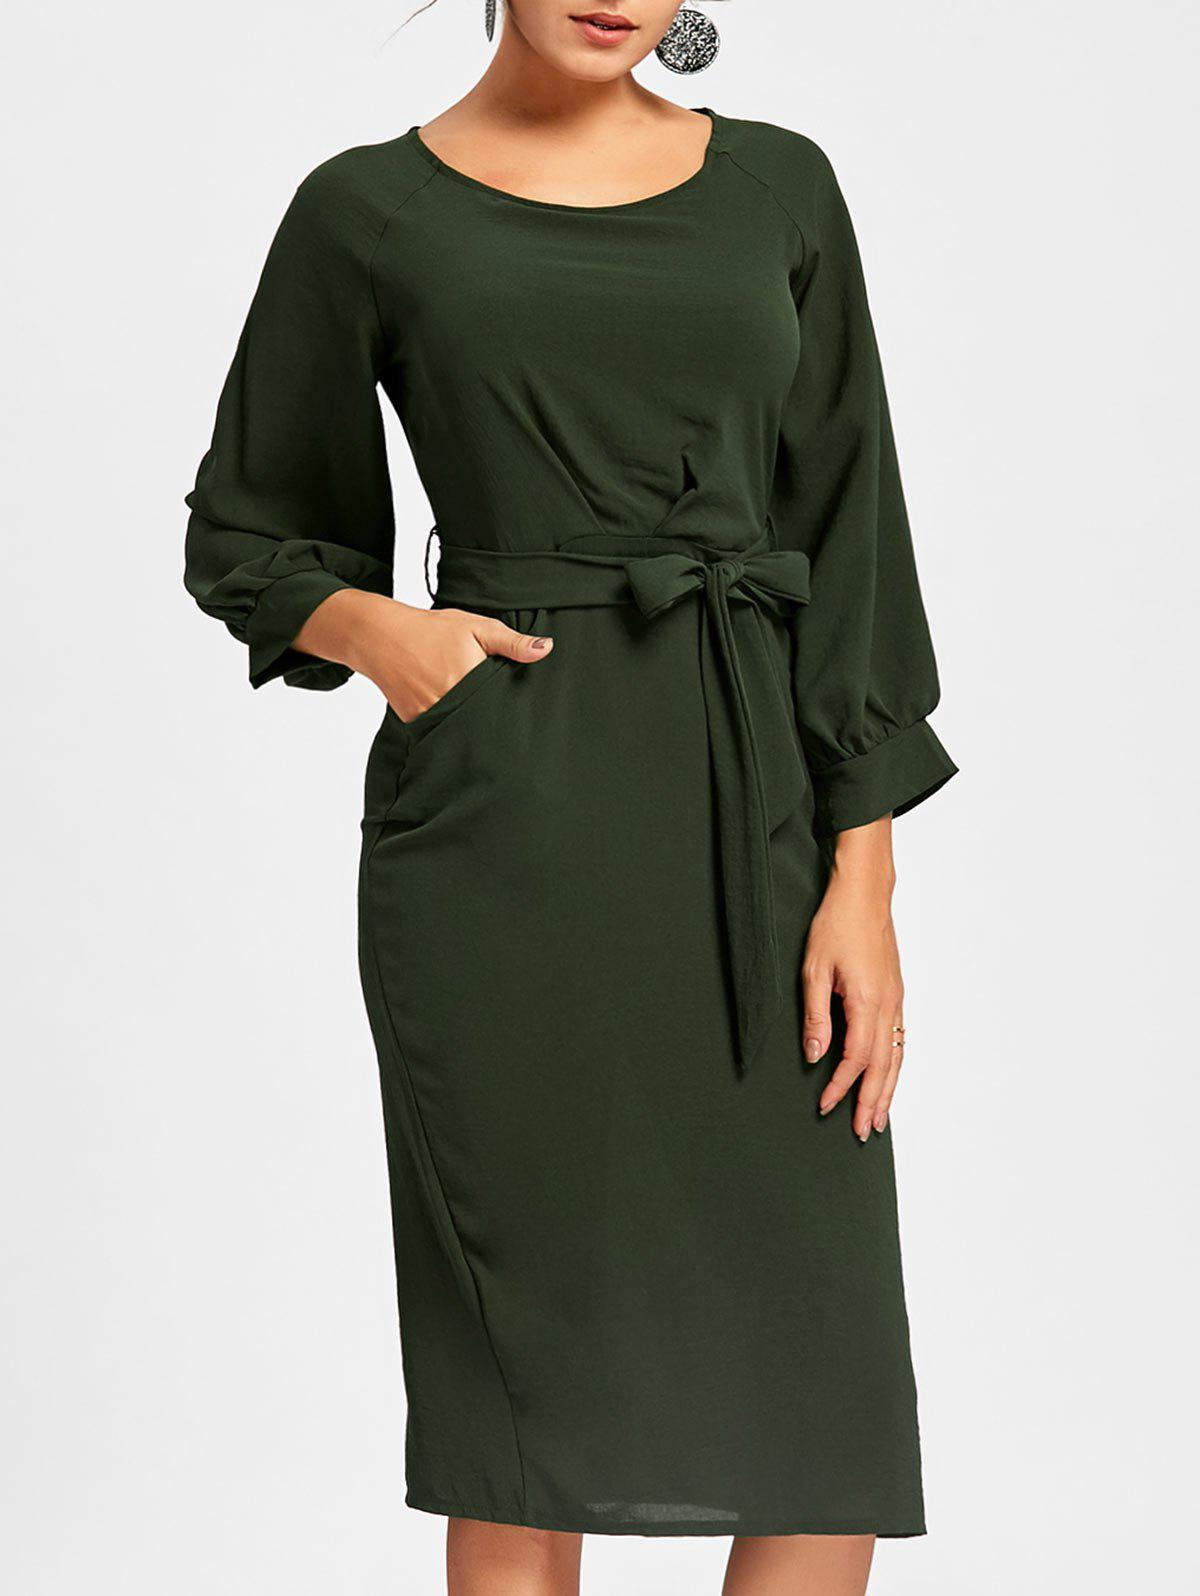 Back Slit Midi Sheath Dress - DEEP GREEN M